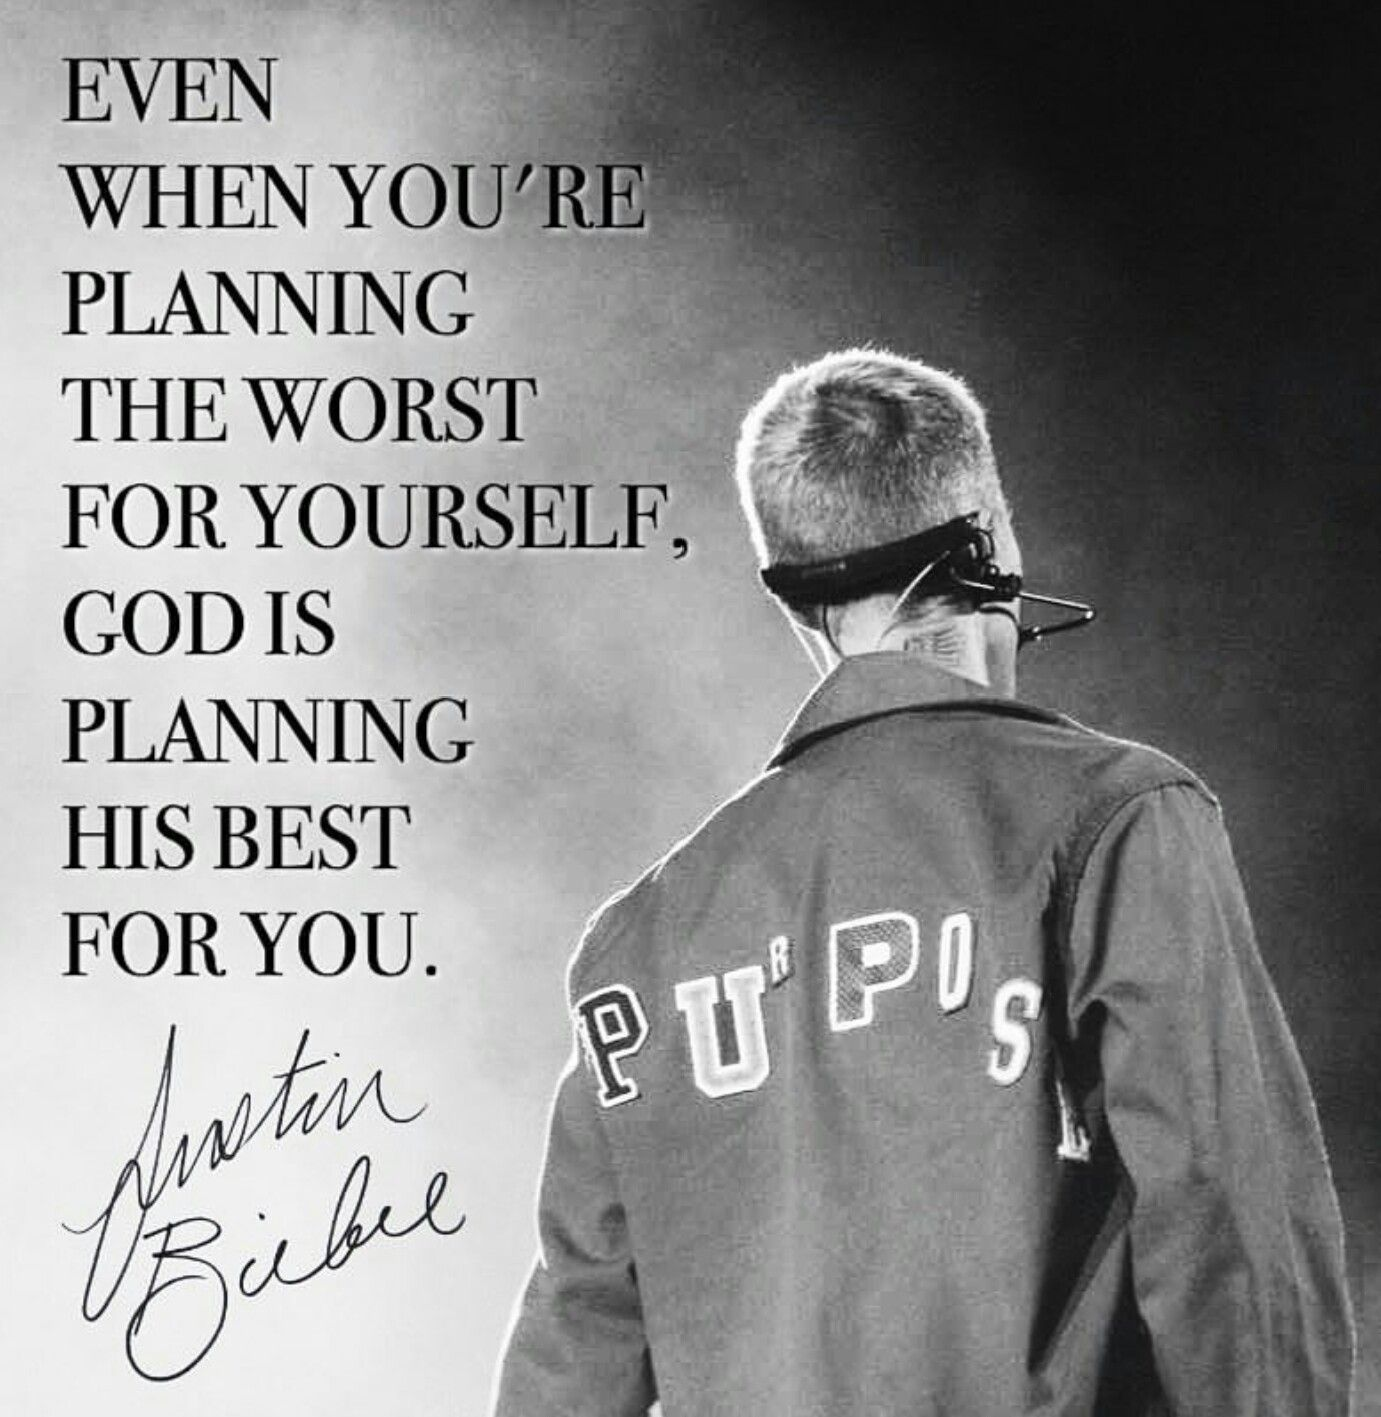 Pin By Violeta Madero On 1 Belieber Justin Bieber Facts I Love Justin Bieber Justin Bieber Photoshoot